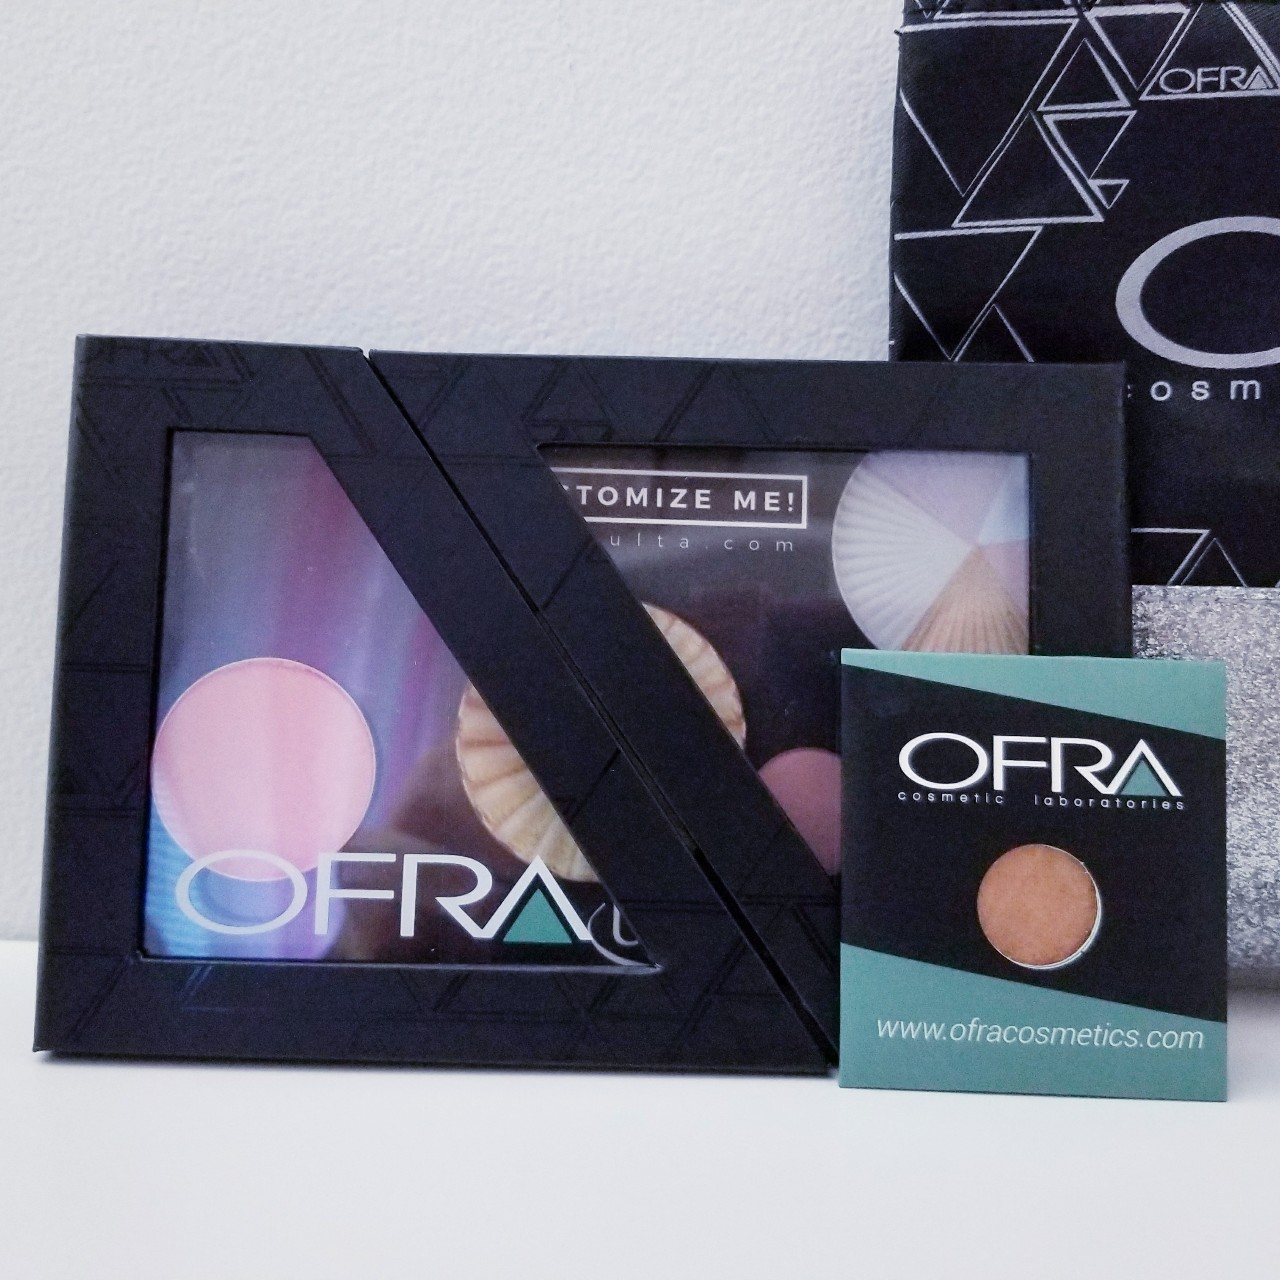 Ofra Cosmetic Laboratories □Black and Glitter Glam    - Depop